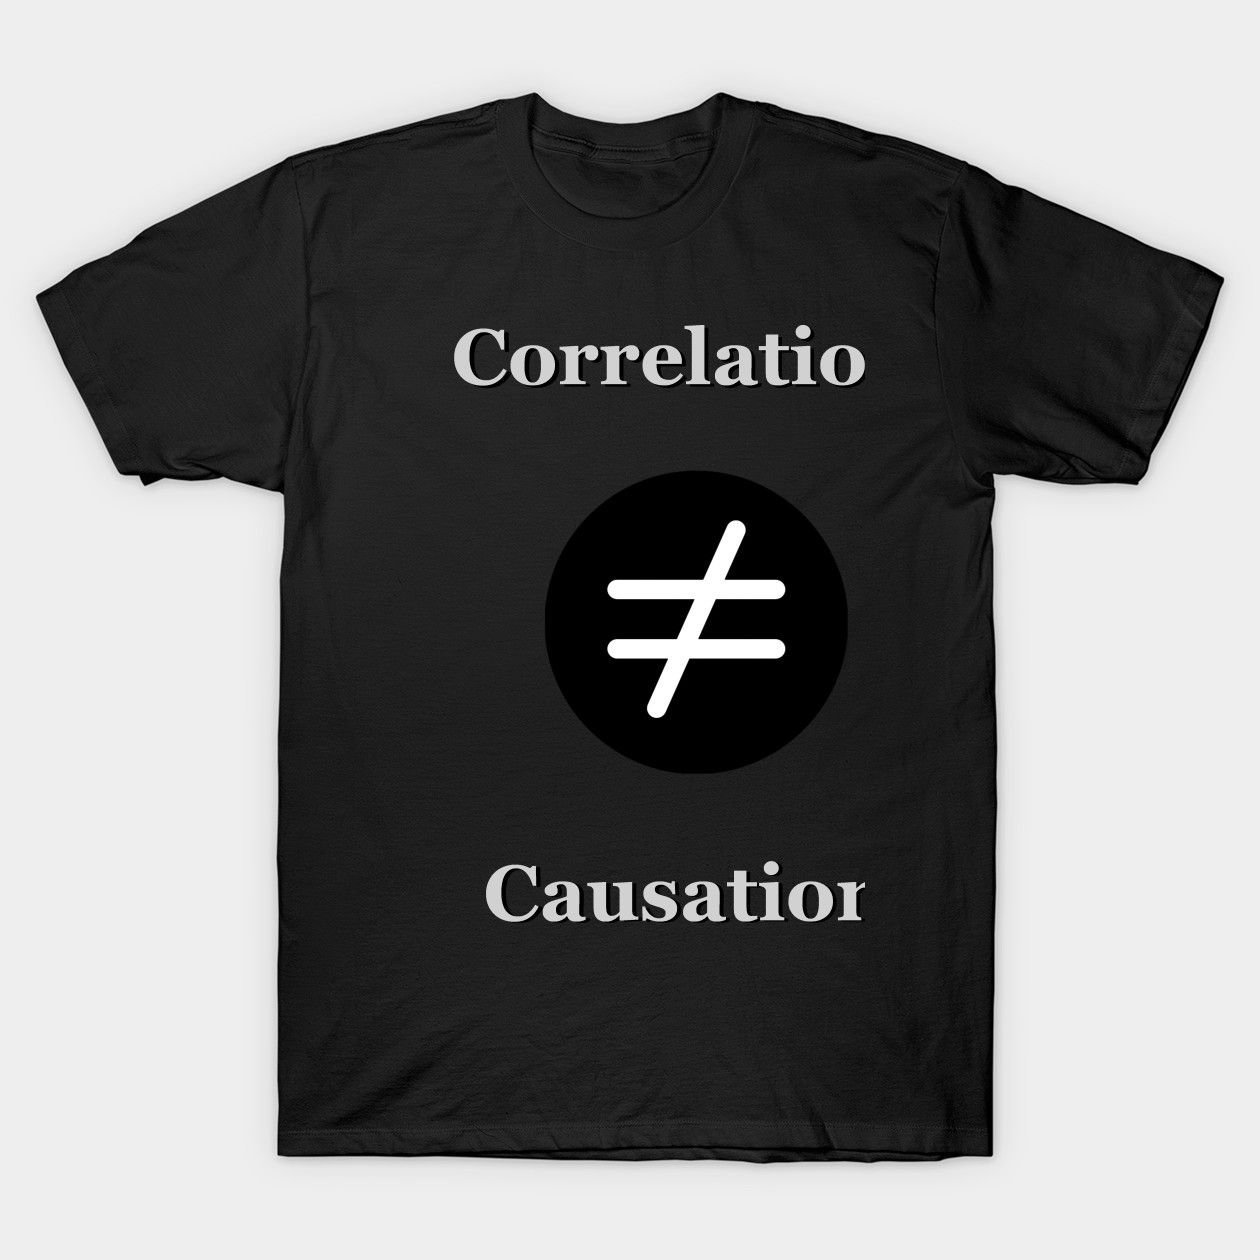 Correlation Vs Causation Correlation Classic T Shirt